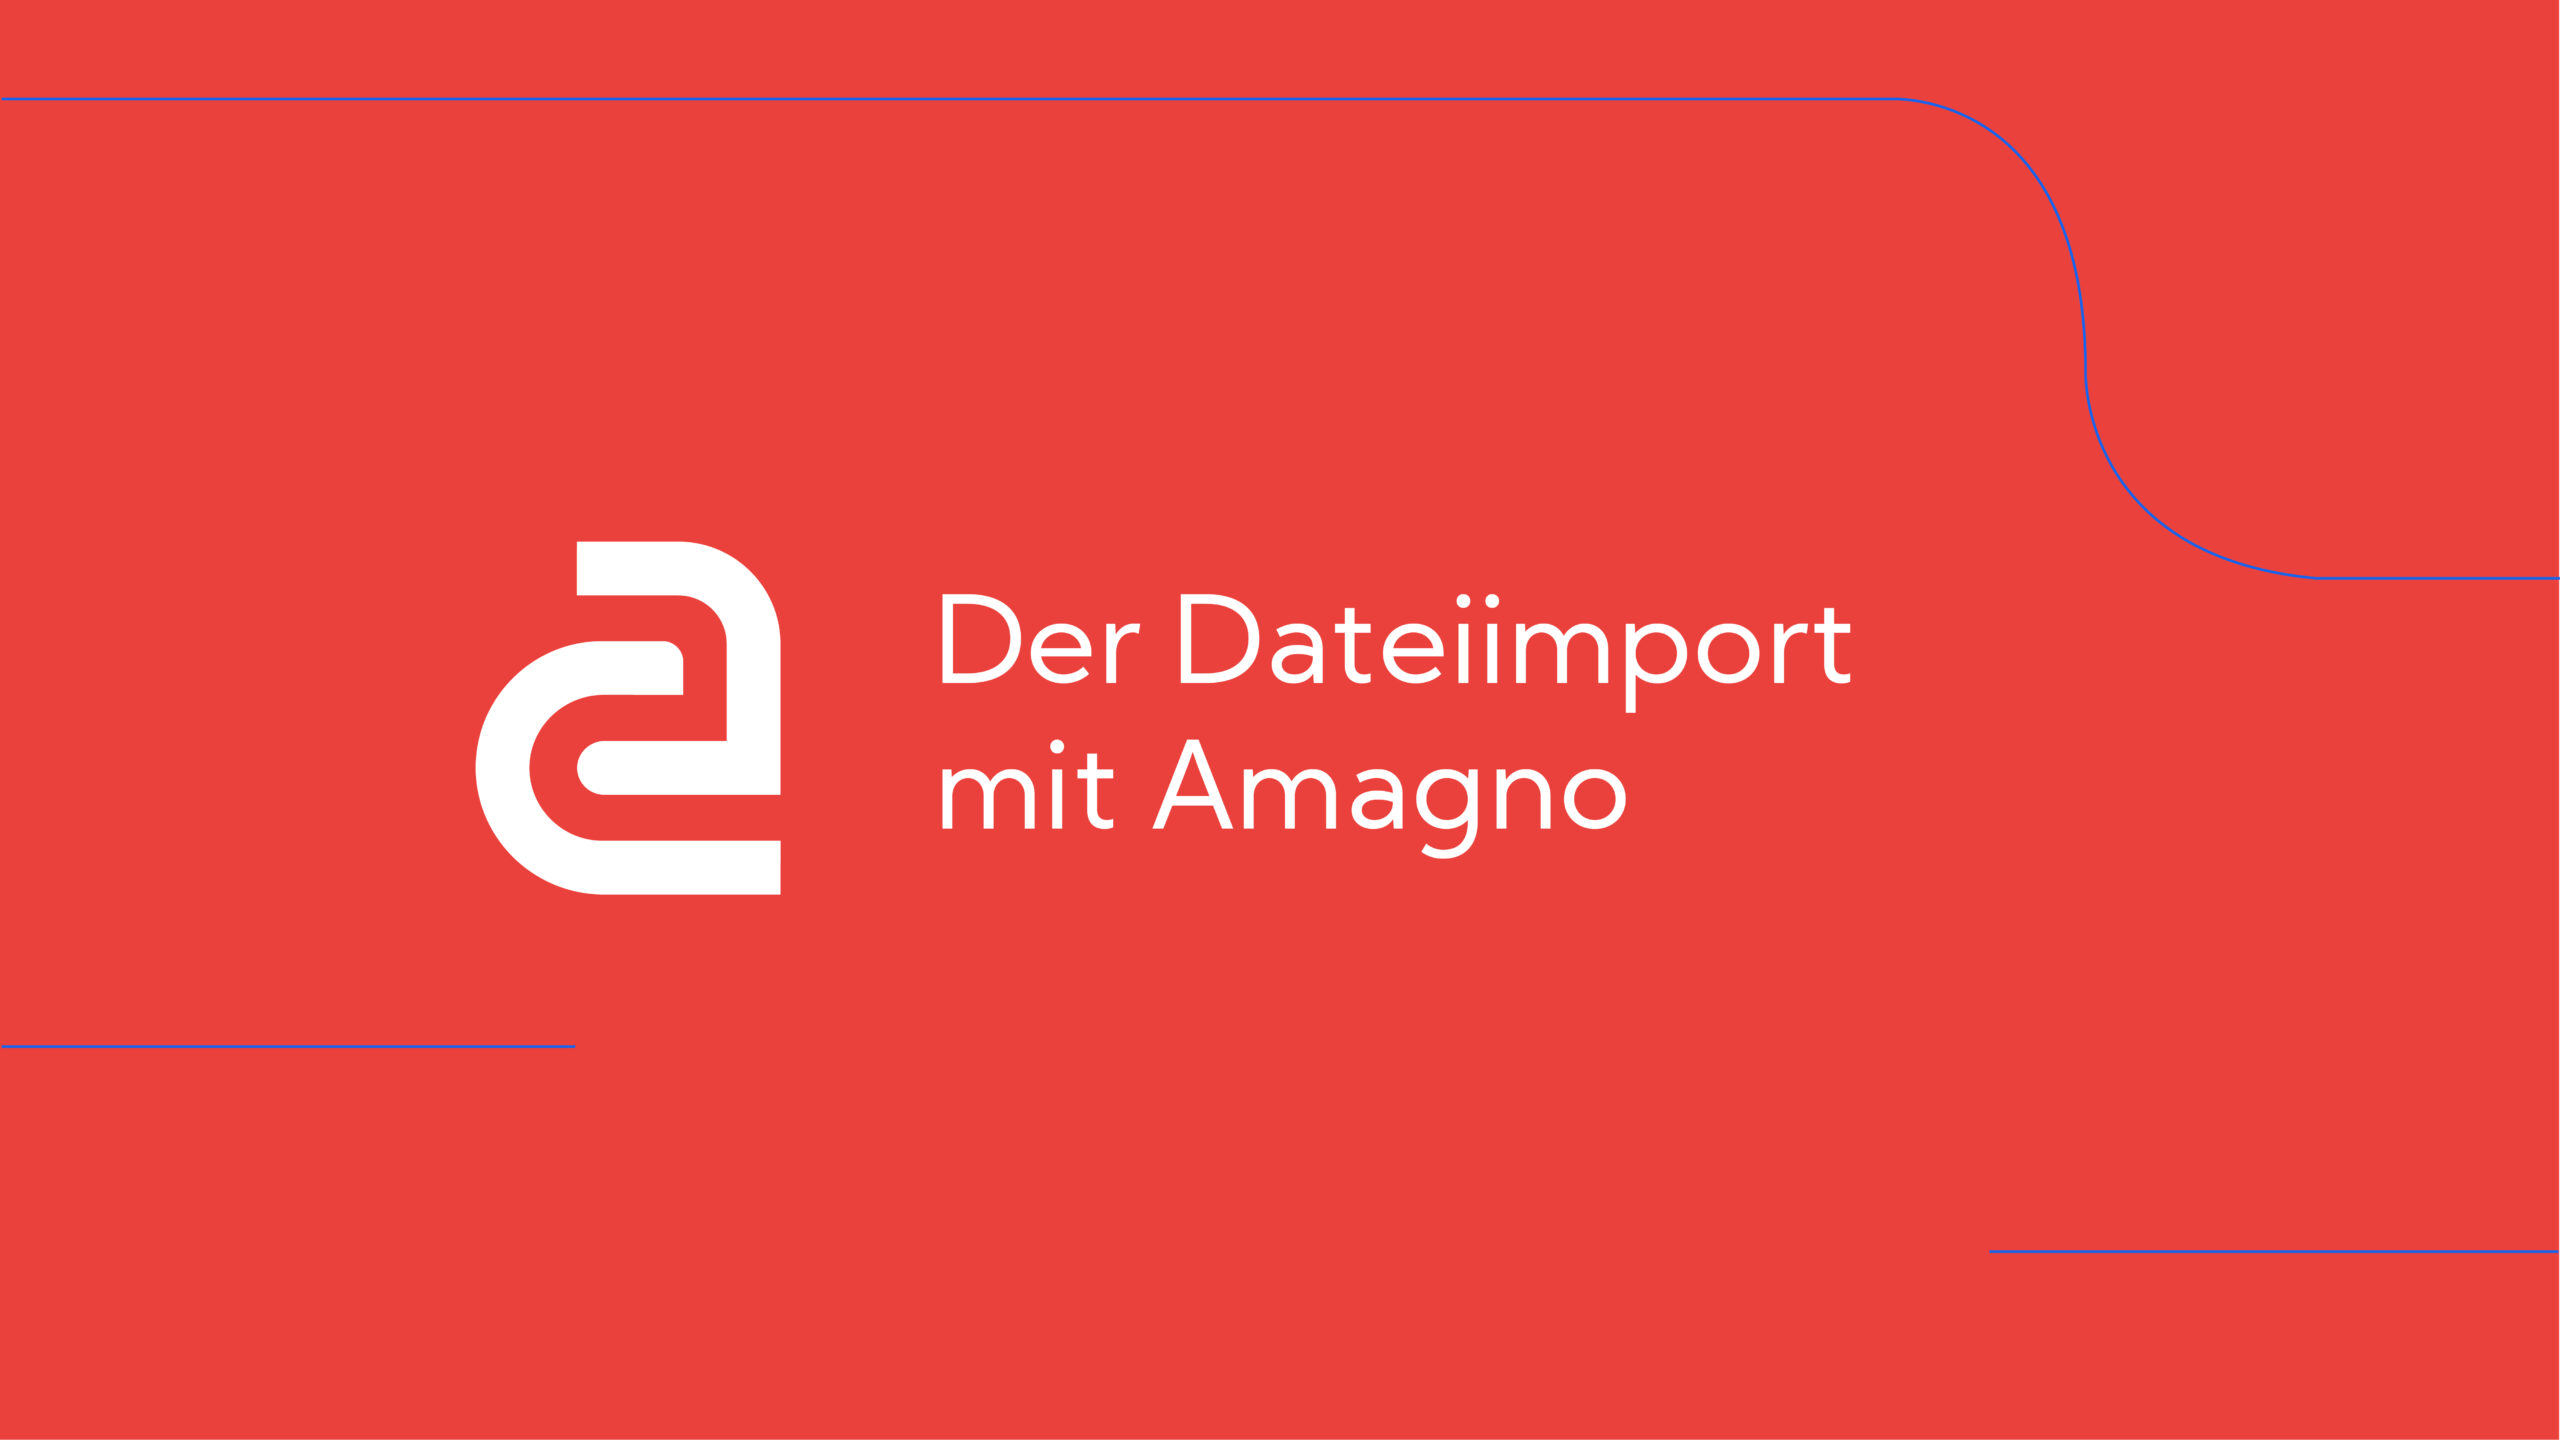 How-To: AMAGNO Basics – Dateiimport